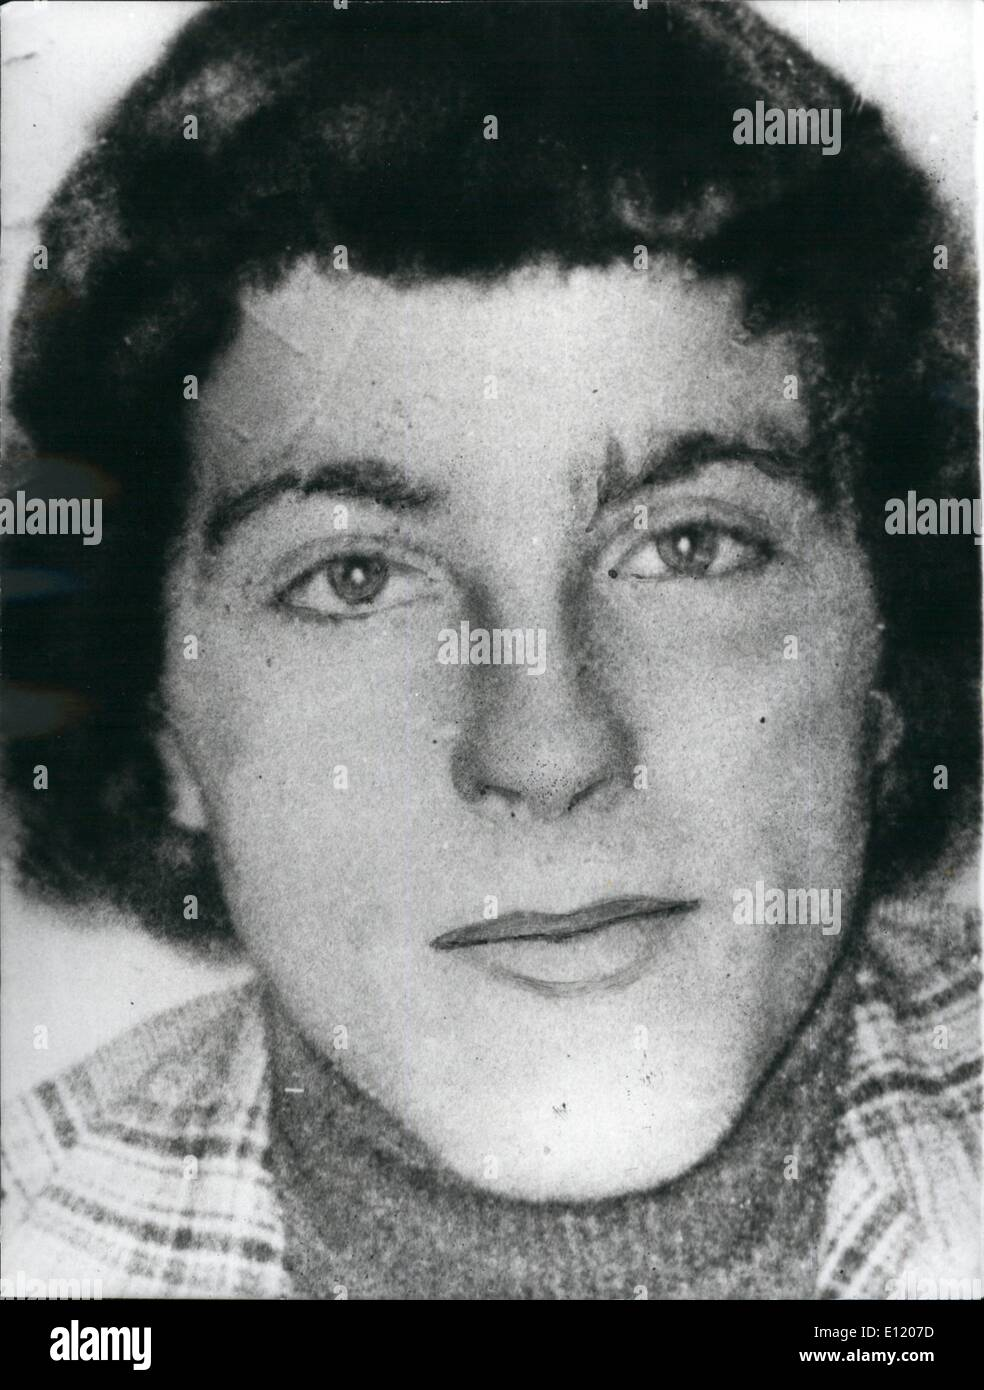 May 05, 1981 - Hunger striker No.2 Francis Hughes Dies : Francis Hughes, 25, became the second hunger sterile in a week to die in the Maze Prison in Belfast. The first being Bobby Sands. Hughes was on his 59 day of his fast at the time of his death, He was one of the Ira's top killers, through men remain on hunger strike. Two of 26 deaths. Three other men remain on hunger strike. Two of them Patsy O'Hara and Ray, and McCreesh are deteriorating rapidly after 53 days, and are expected to died any time. Photo shows Francis Hughes who died yesterday in the Maze prison, Belfast after 59-day fast. - Stock Image